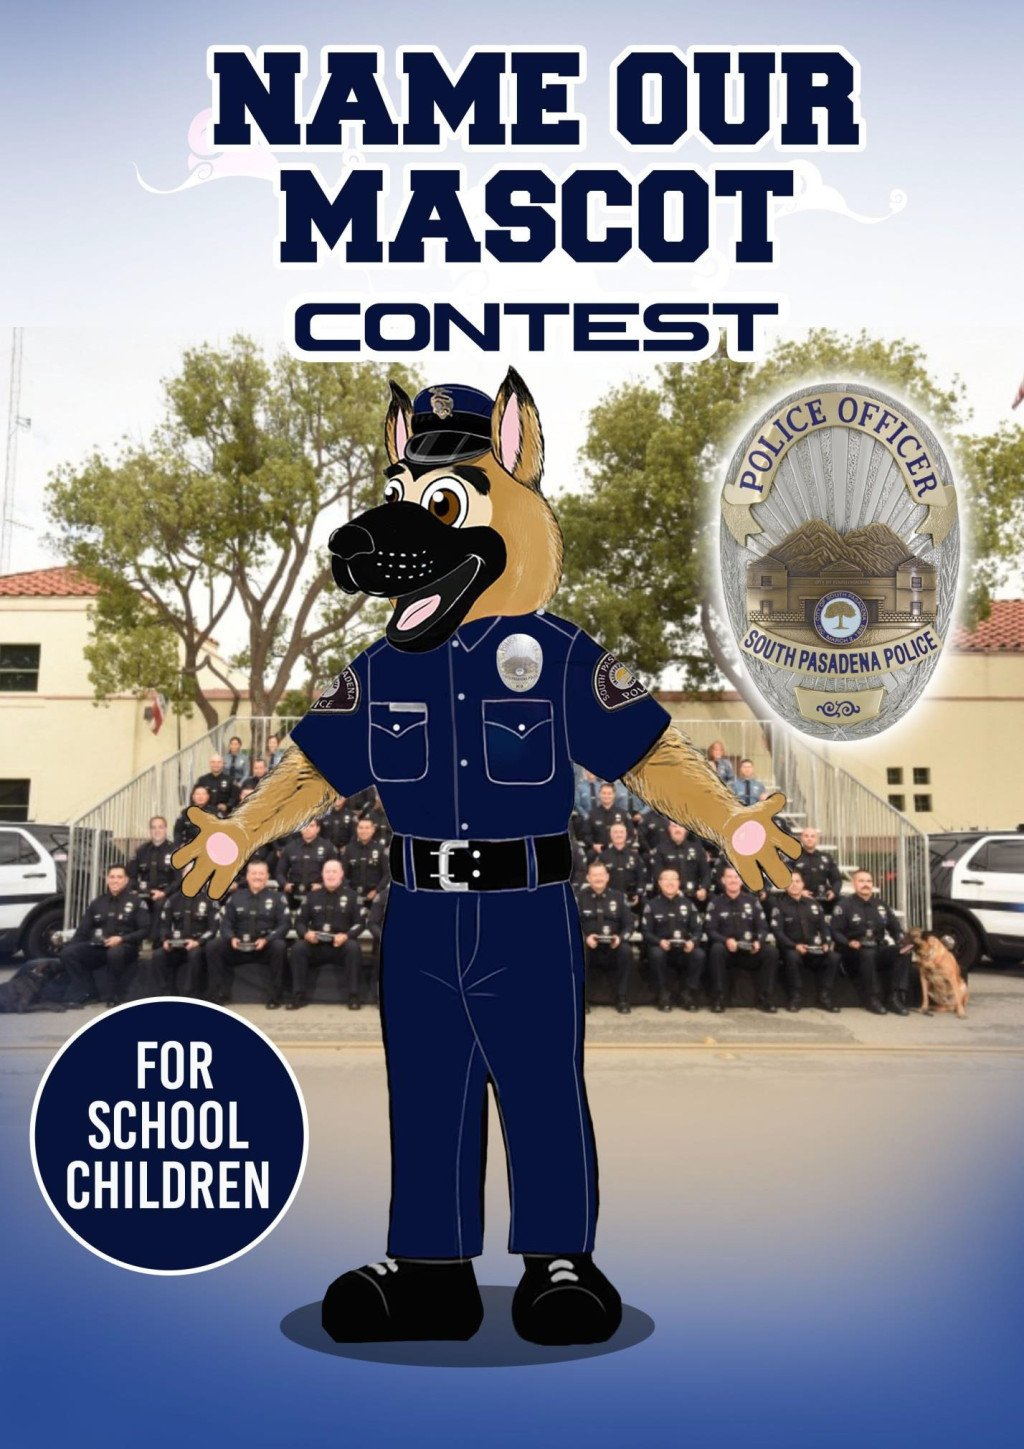 South Pasadena police are asking the city's students for help naming their new mascot https://t.co/Y0rnRQEGMq https://t.co/Ivh481QlTa